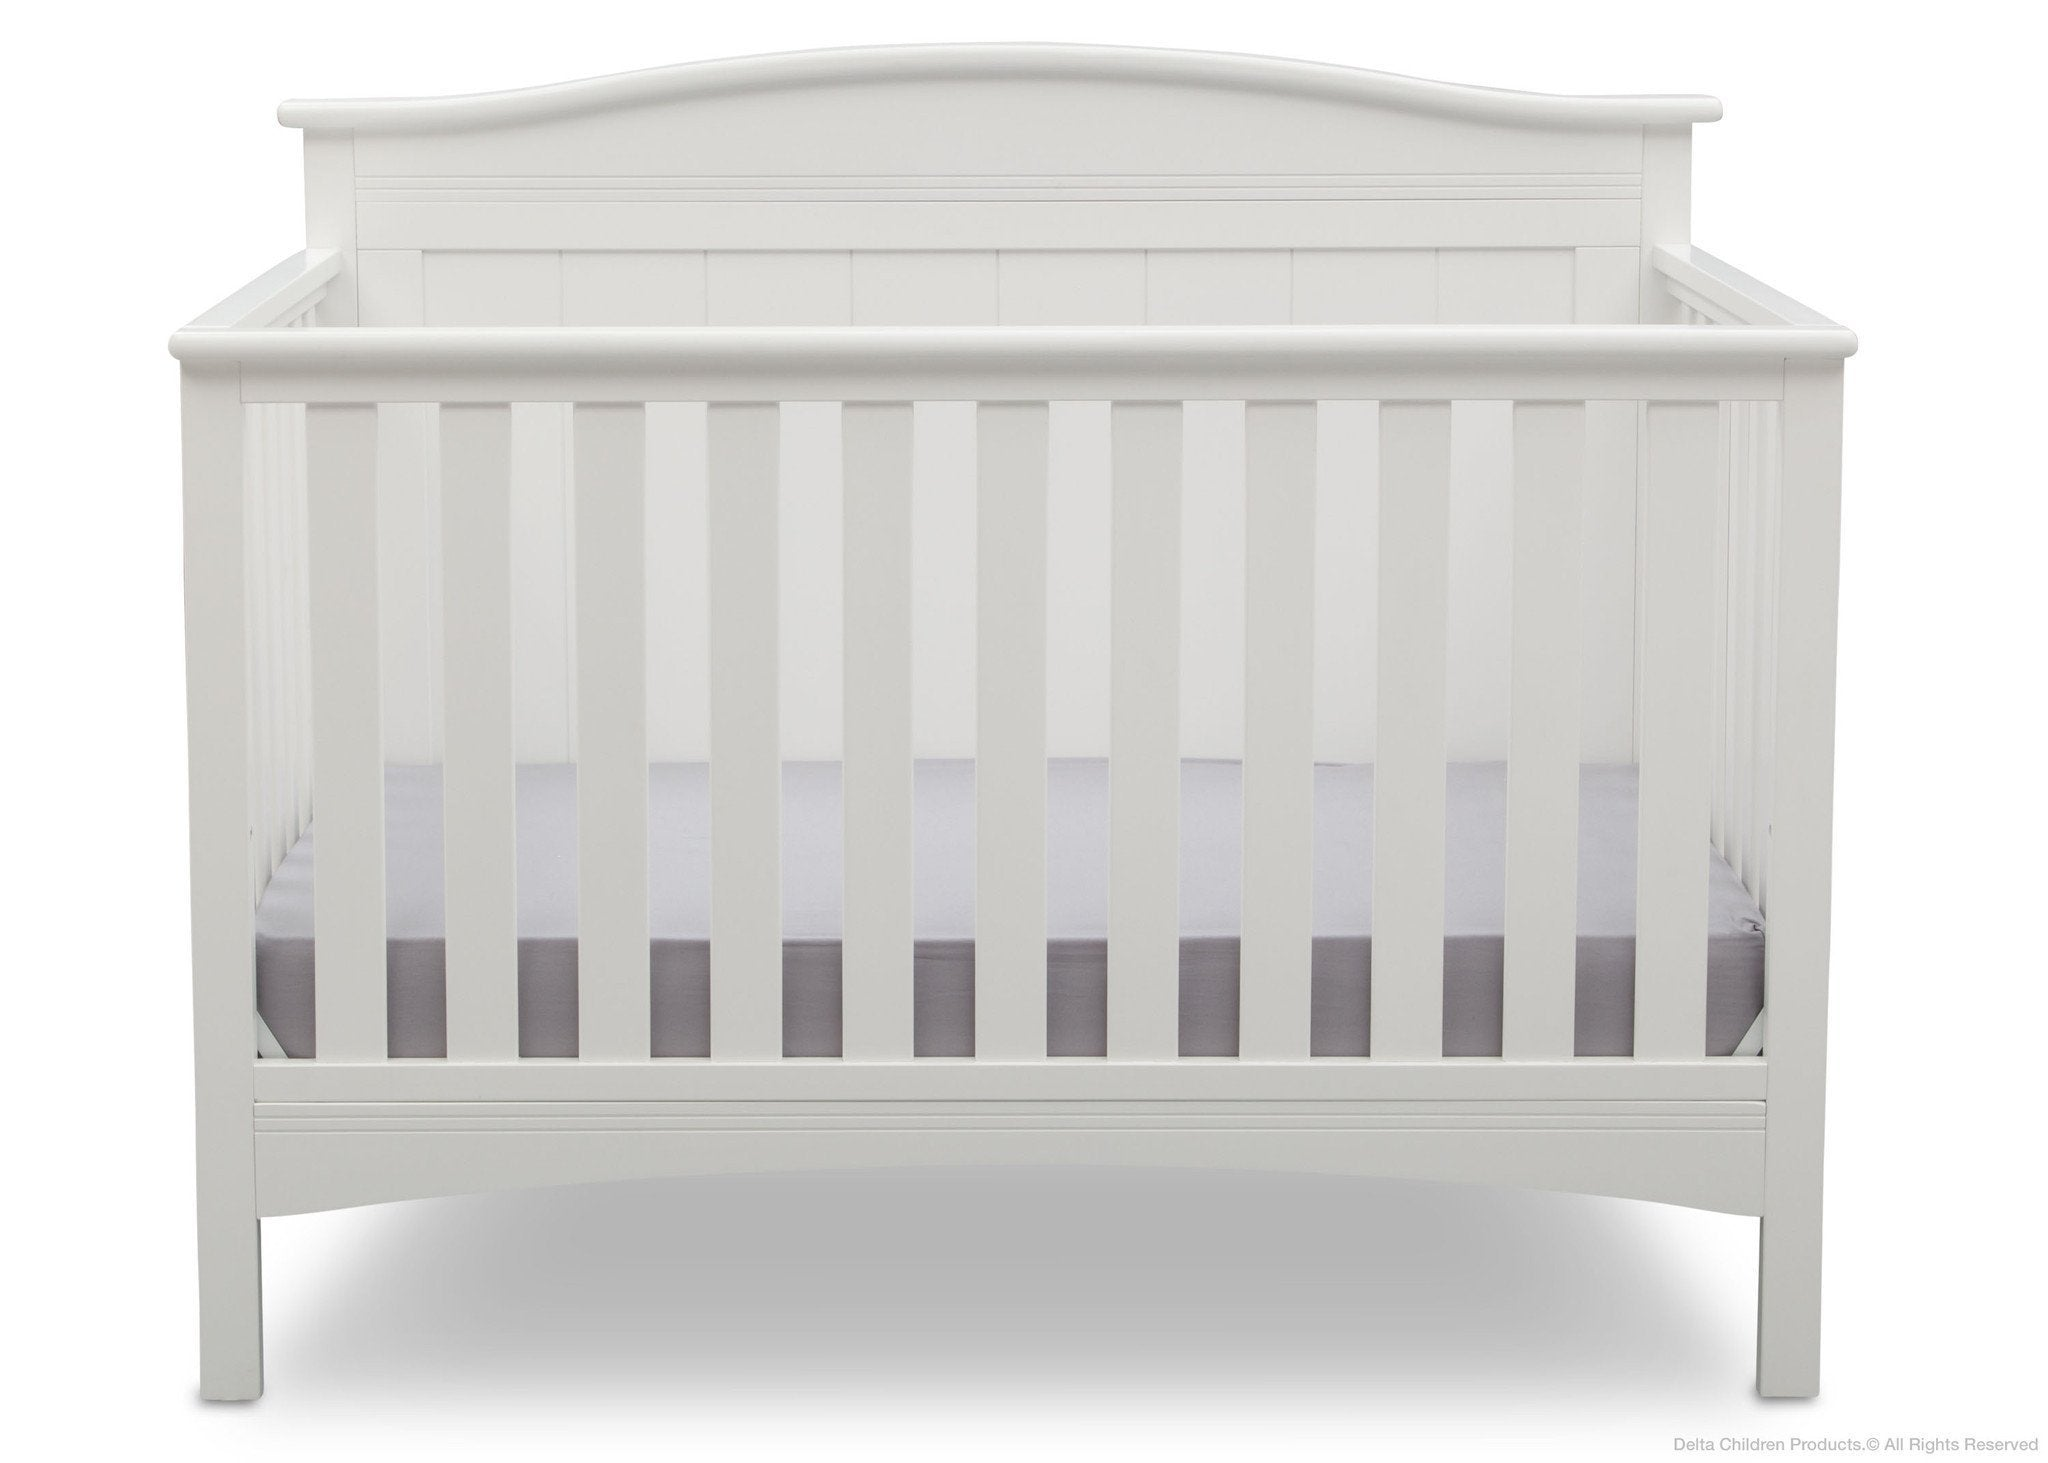 Delta Children Bianca (130) Bennett 4-in-1 Crib Front View b2b